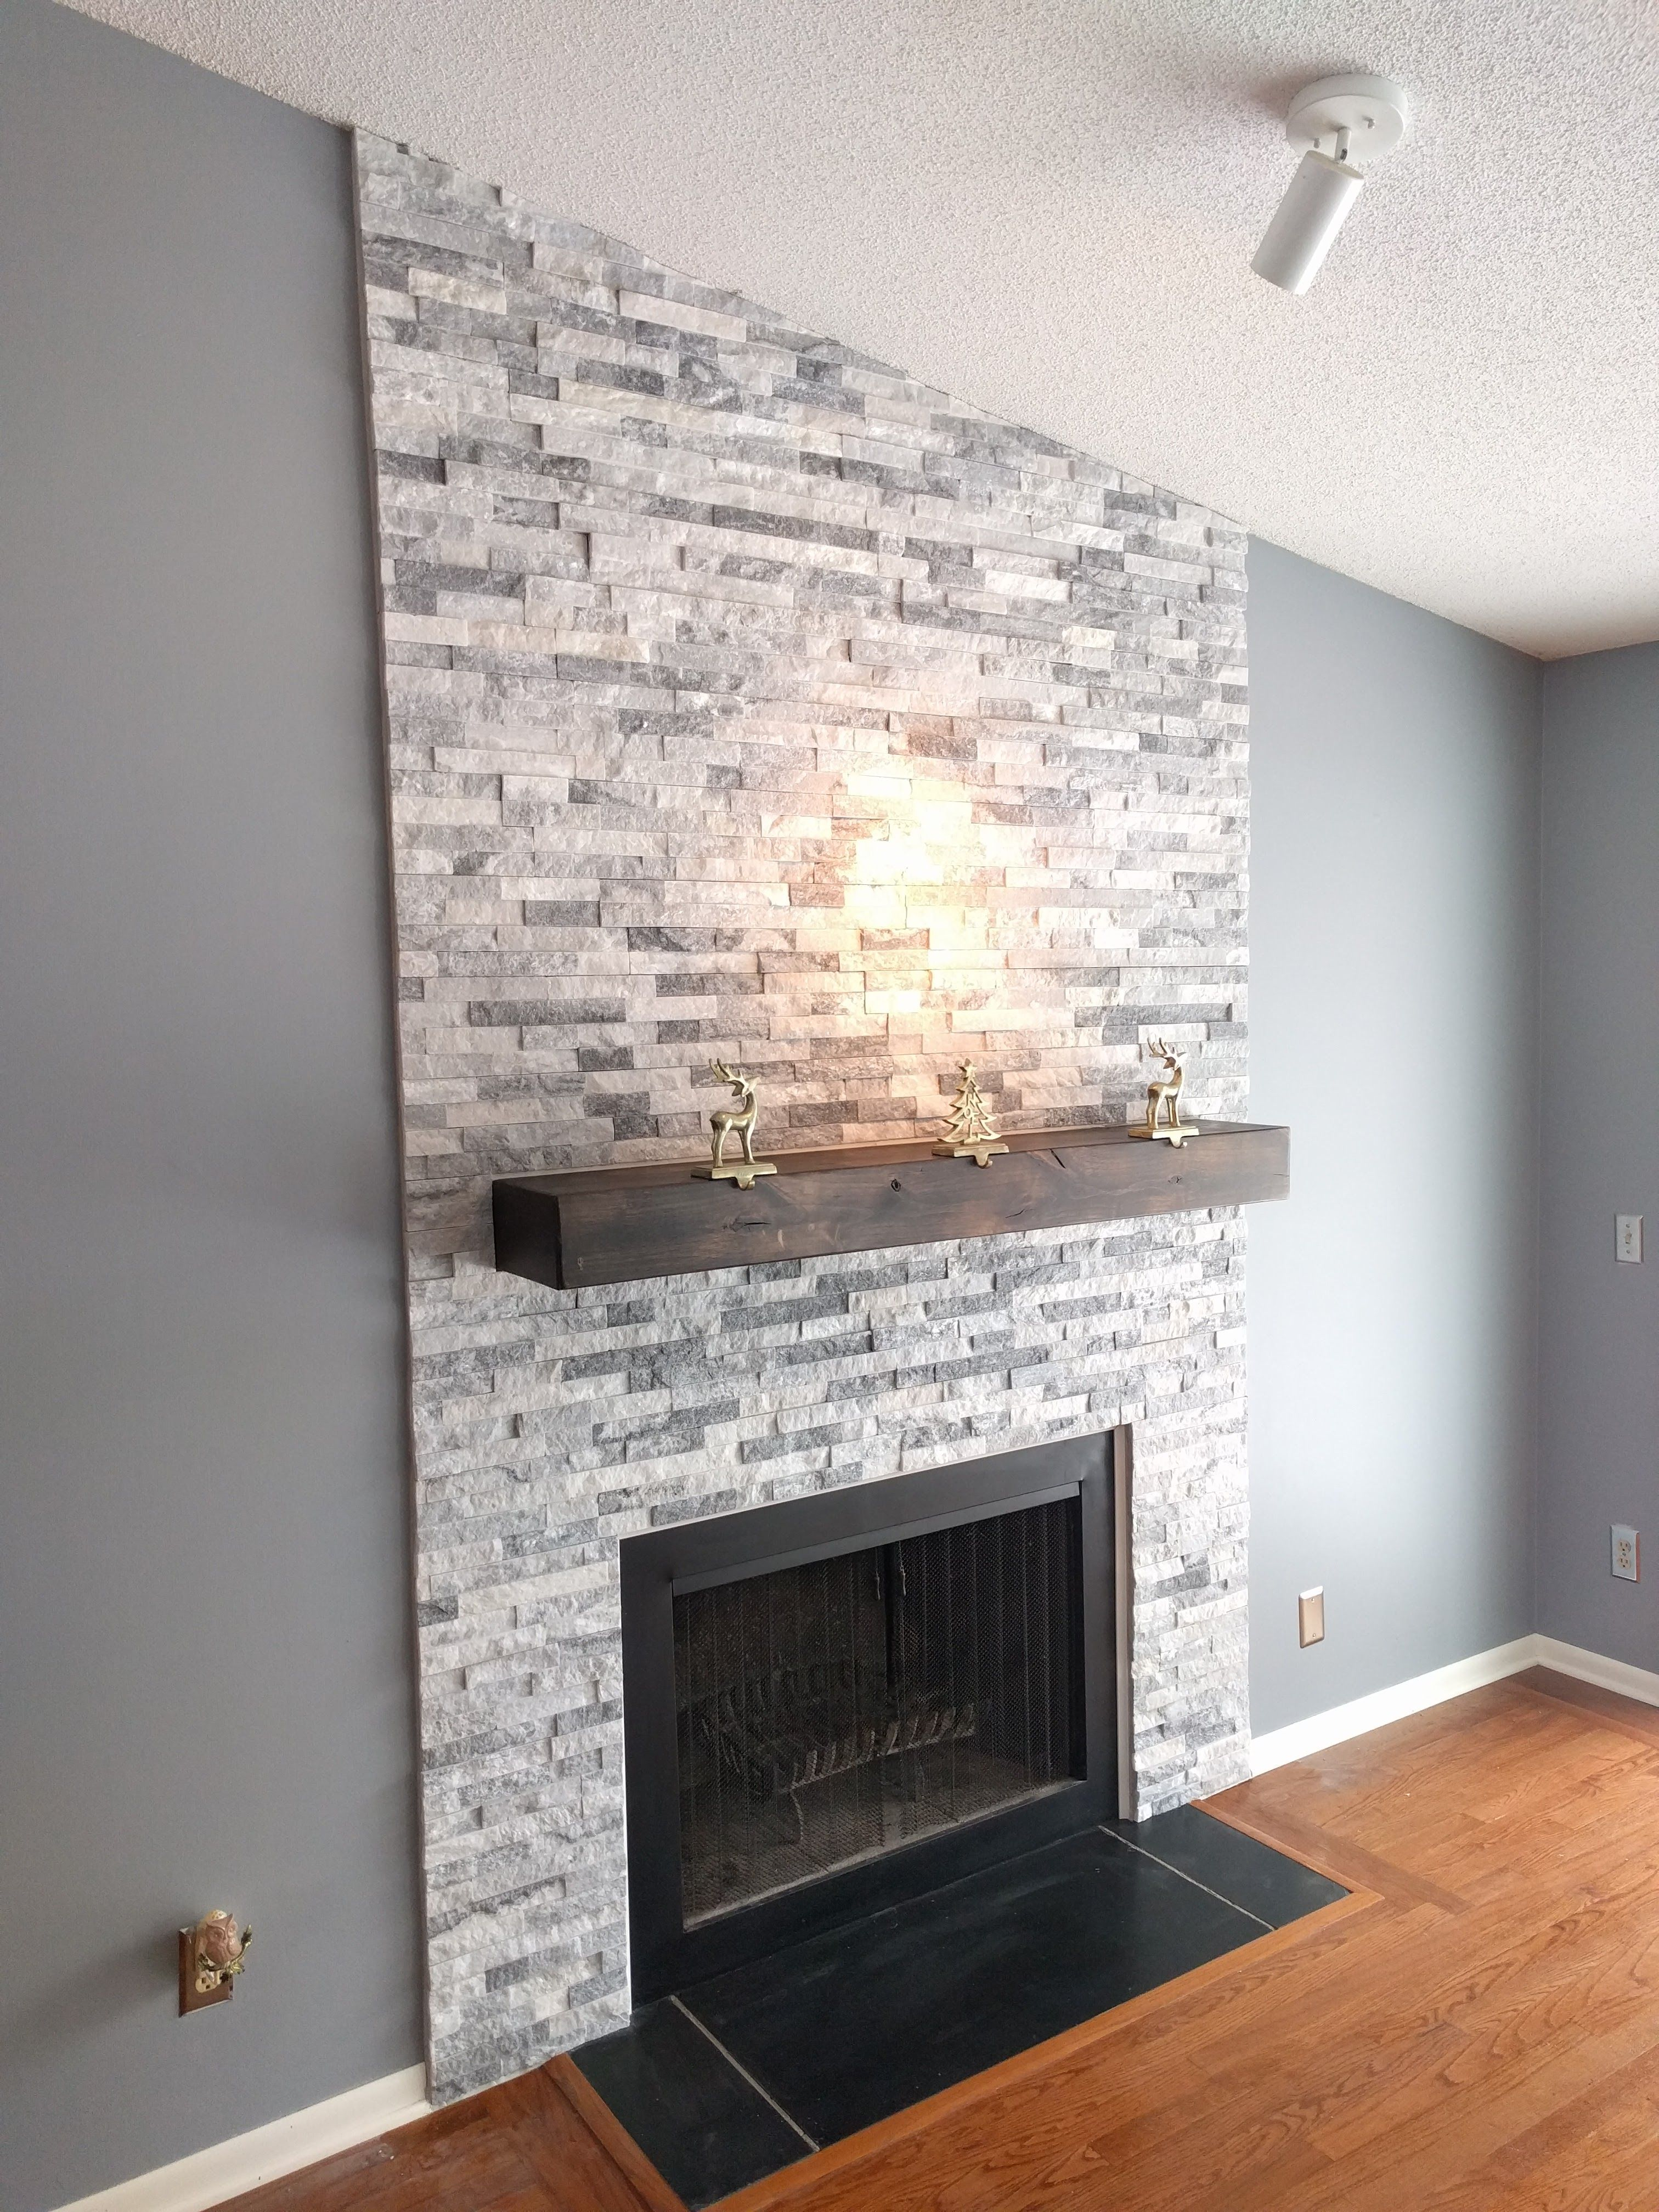 Fireplace Finishes Ideas Best Modern Fireplaces Tile And Design Images In Here